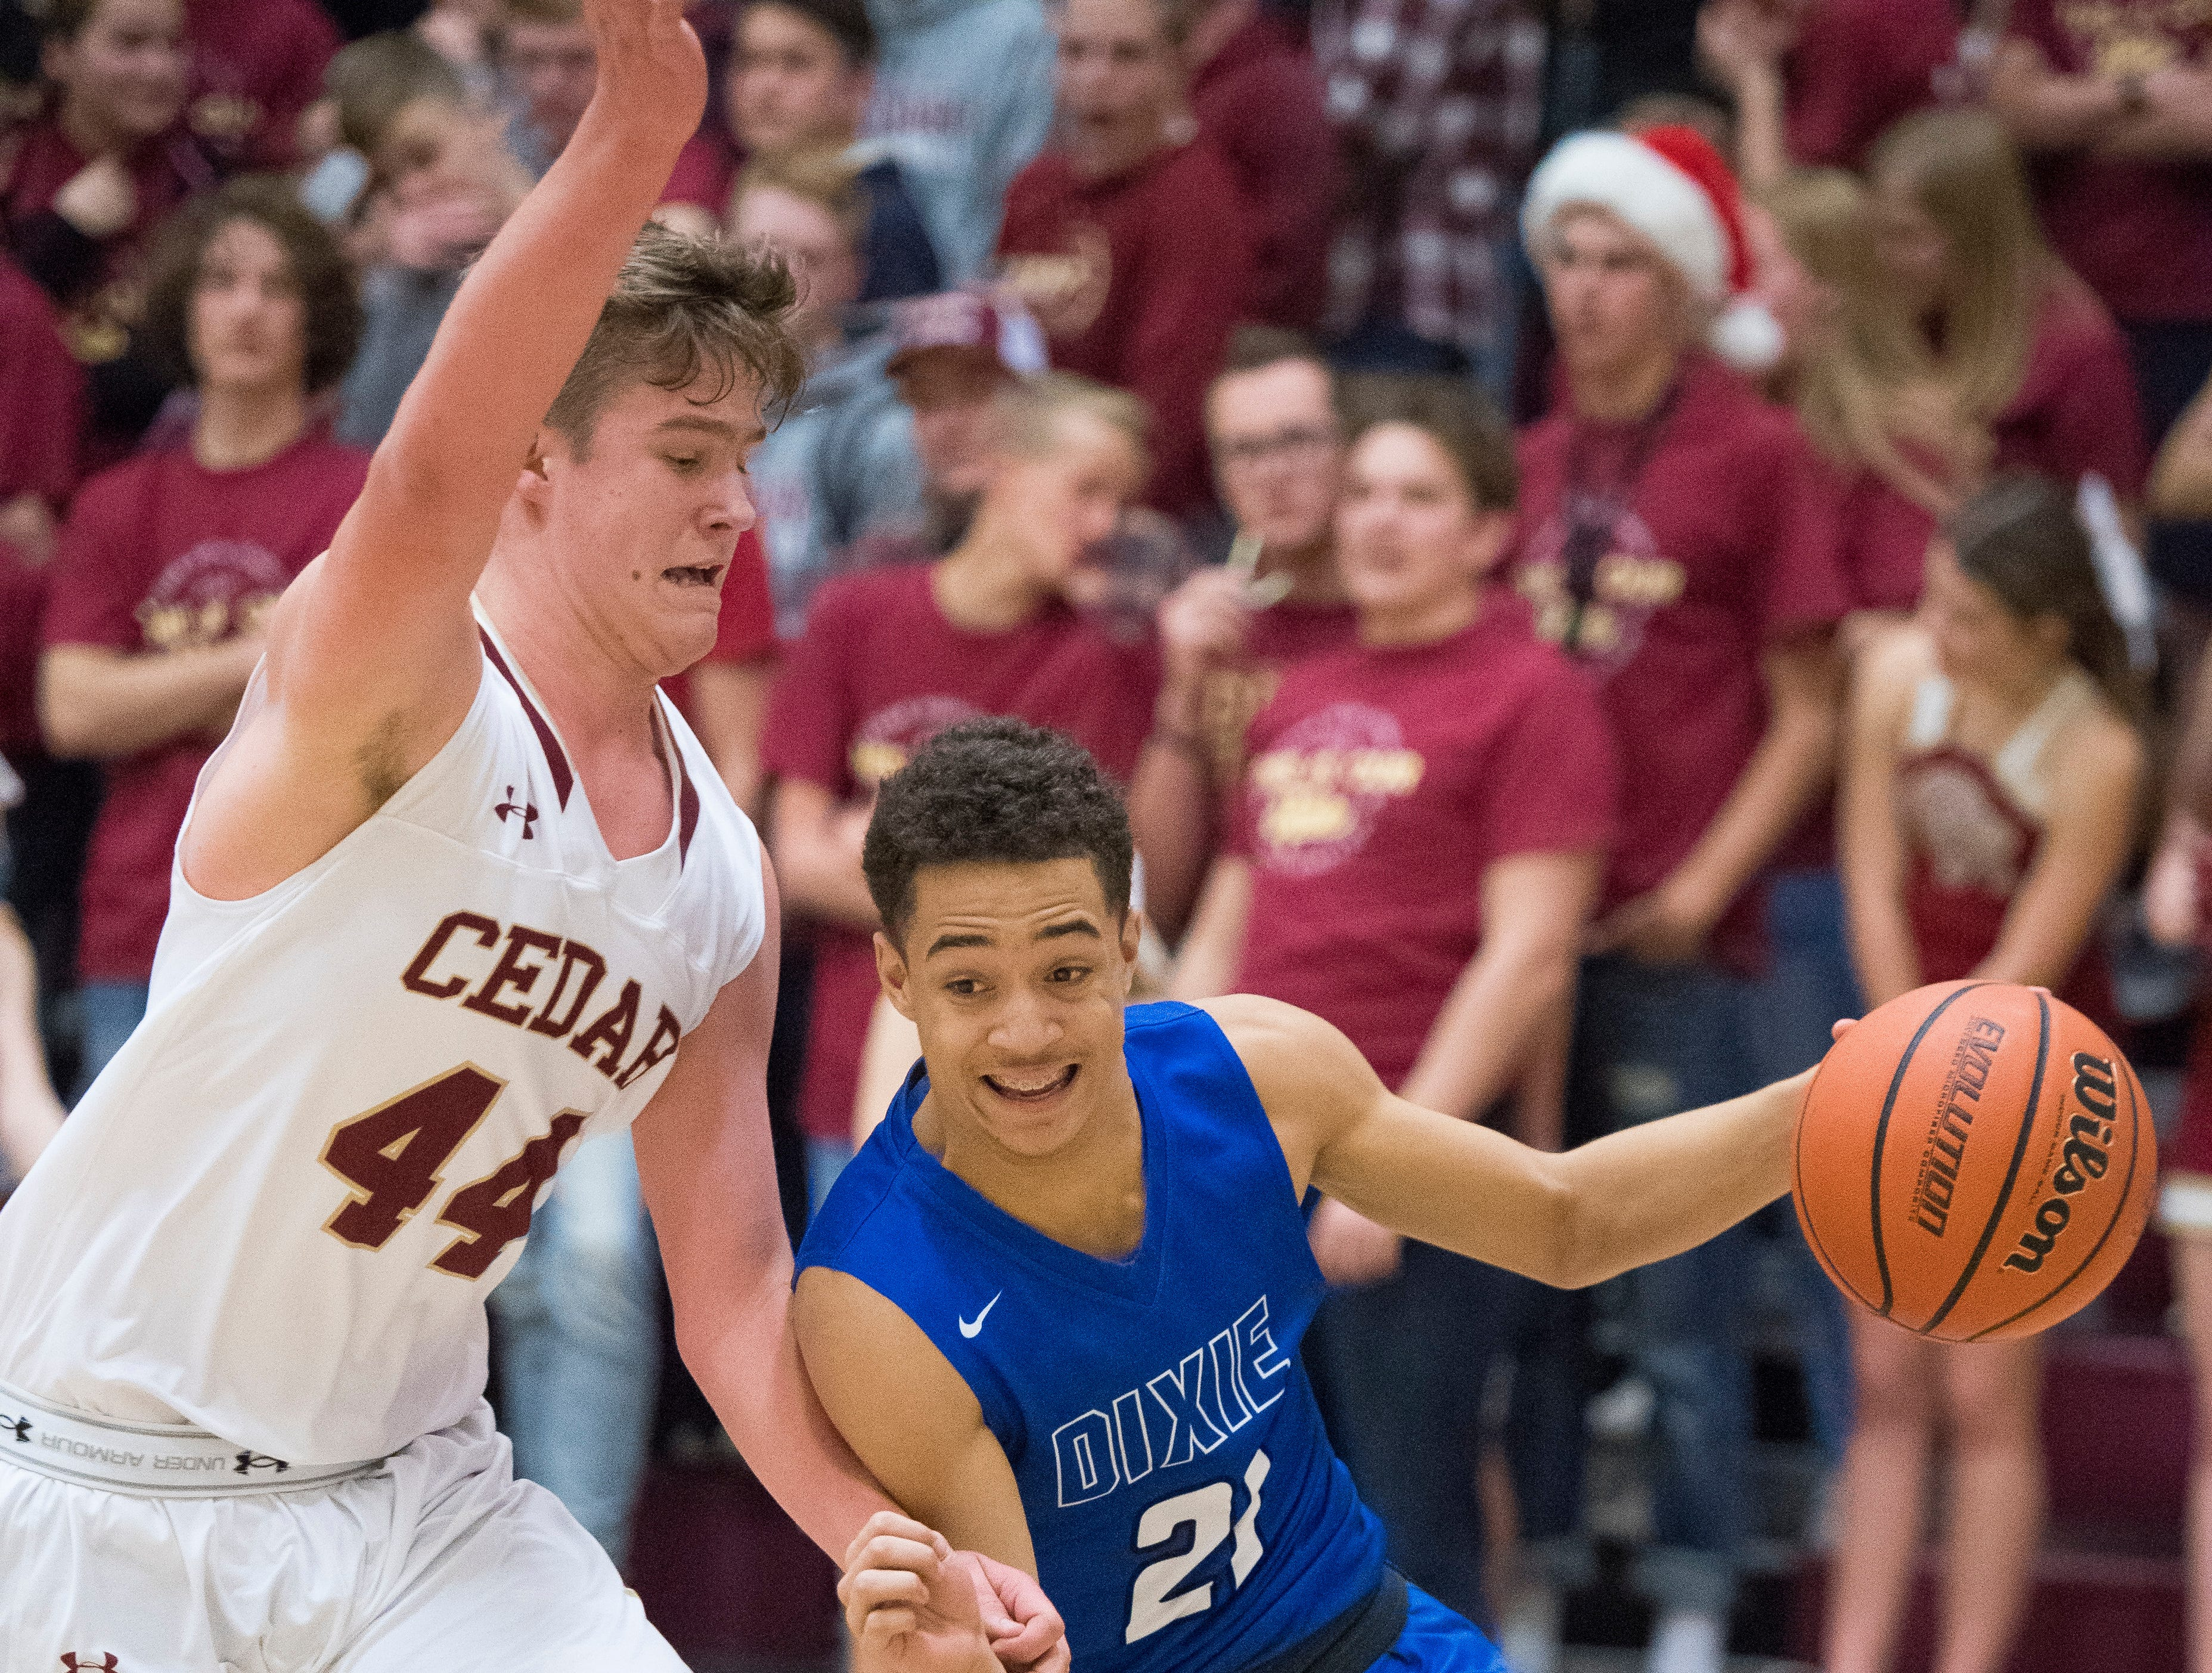 Dixie High School junior Christopher Schultz (21) works Cedar High School sophomore Luke Armstrong (44) at CHS Wednesday, December 19, 2018. Trading the lead all game, Dixie won, 49-45.